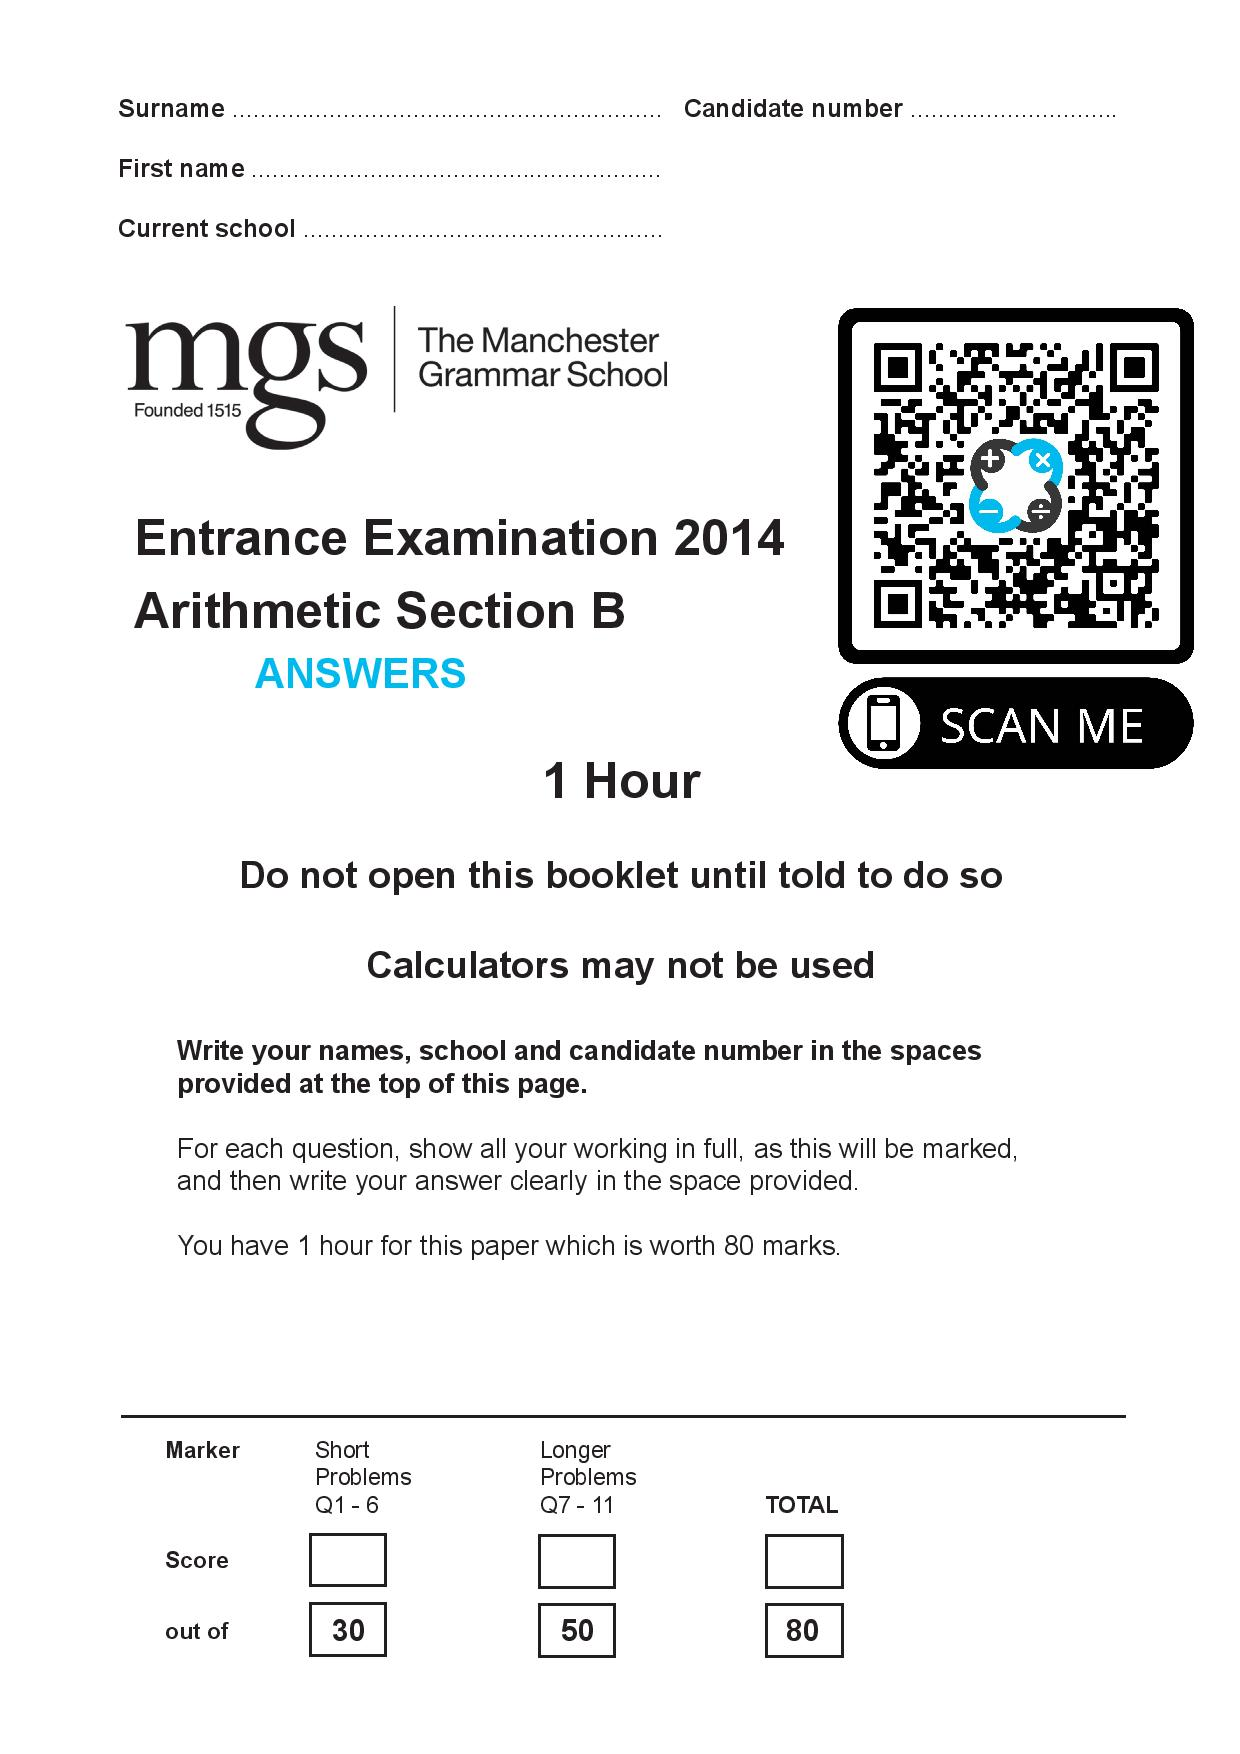 The Manchester Grammar School Entrance Examination 2014 Arithmetic Section B Answer Paper page 001